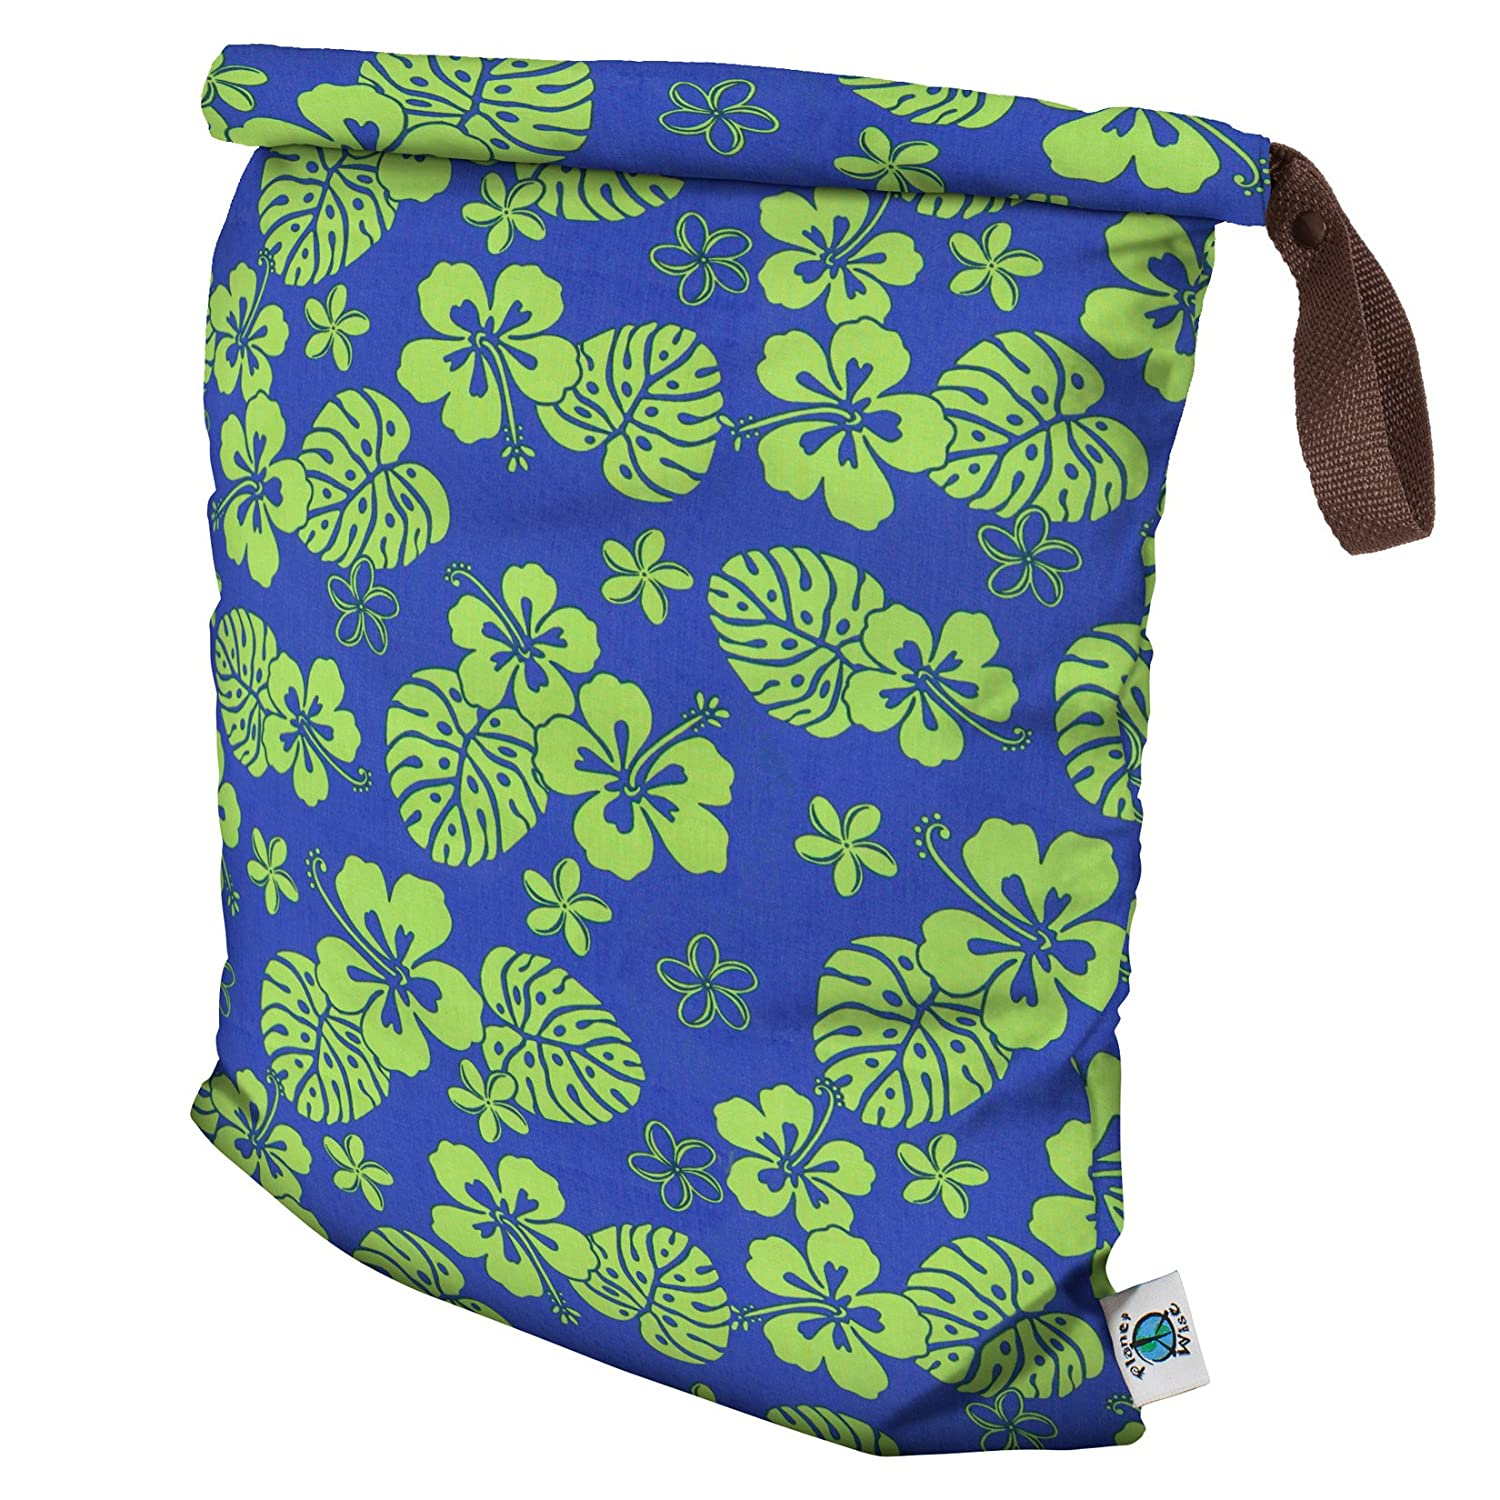 Planet Wise Roll Down Wet Diaper Bag, Blue Hawaii, Large by Planet Wise   B00CHPJ84U